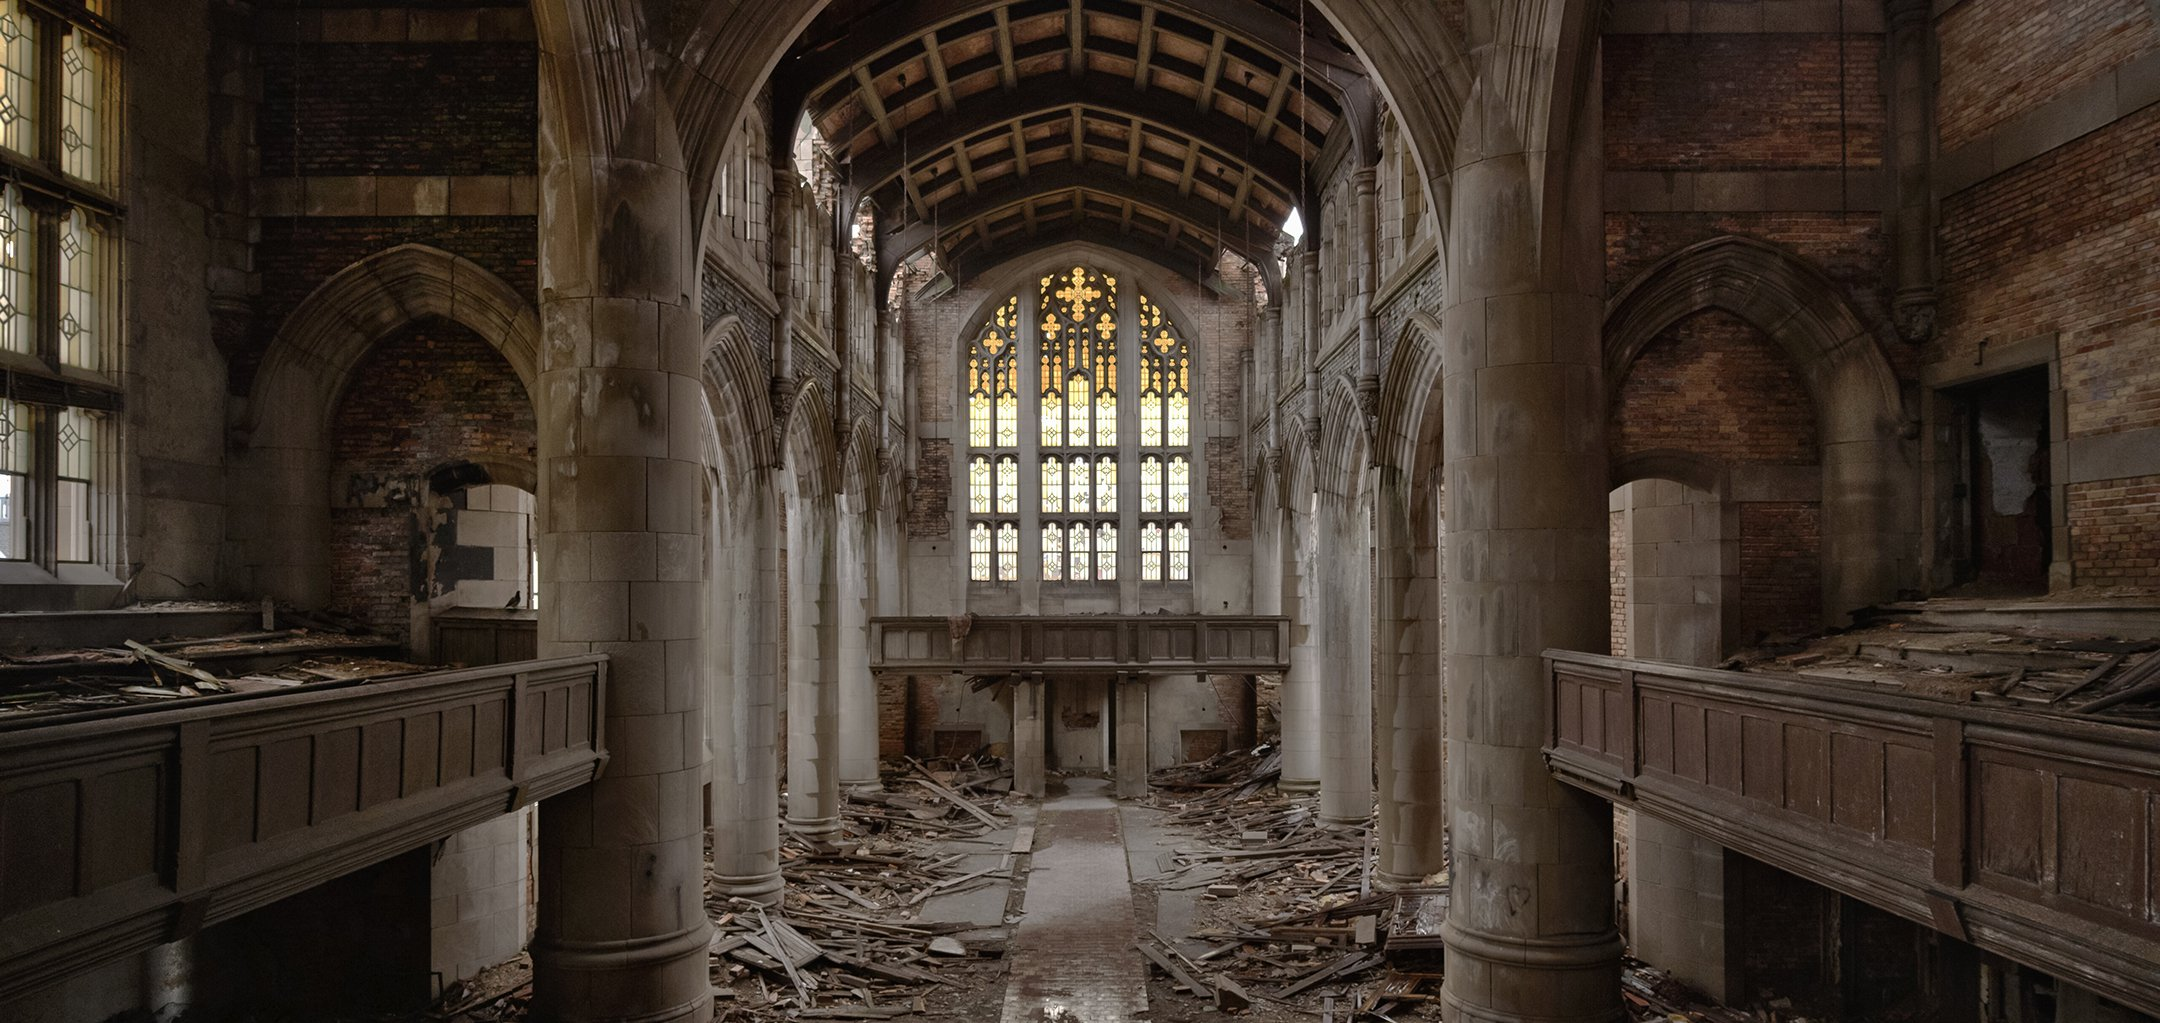 The interior of a grand, dilapidated church - still from 'Homo Sapiens' (2016)